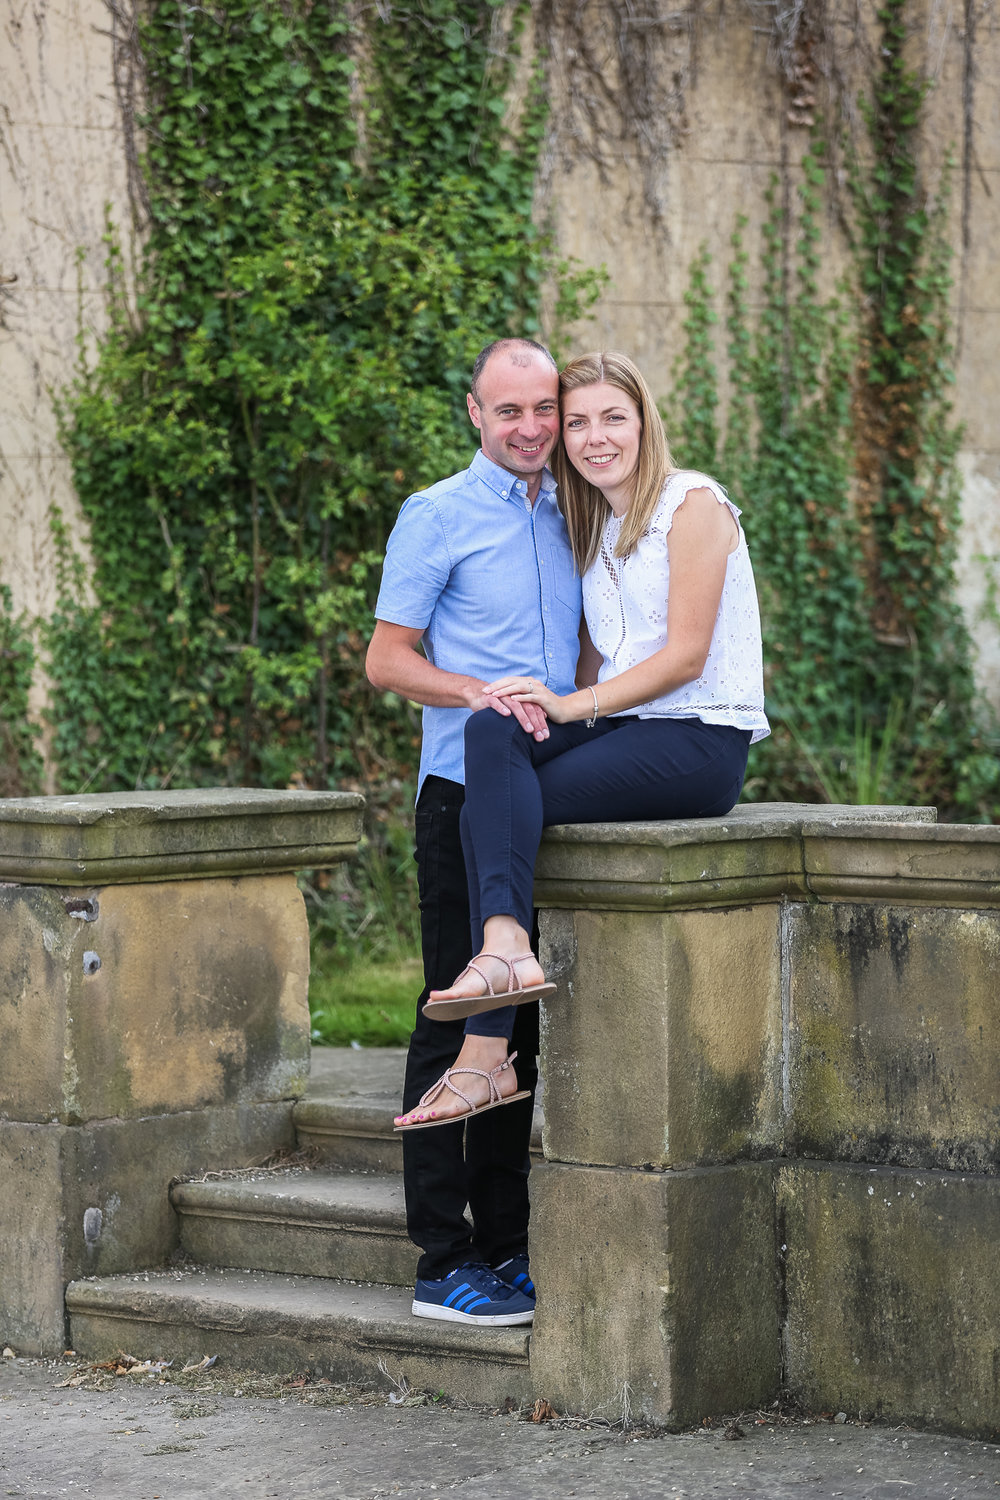 0093-Claire & Tony - engagement-Heaton Moor Park-Manchester-photo.jpg